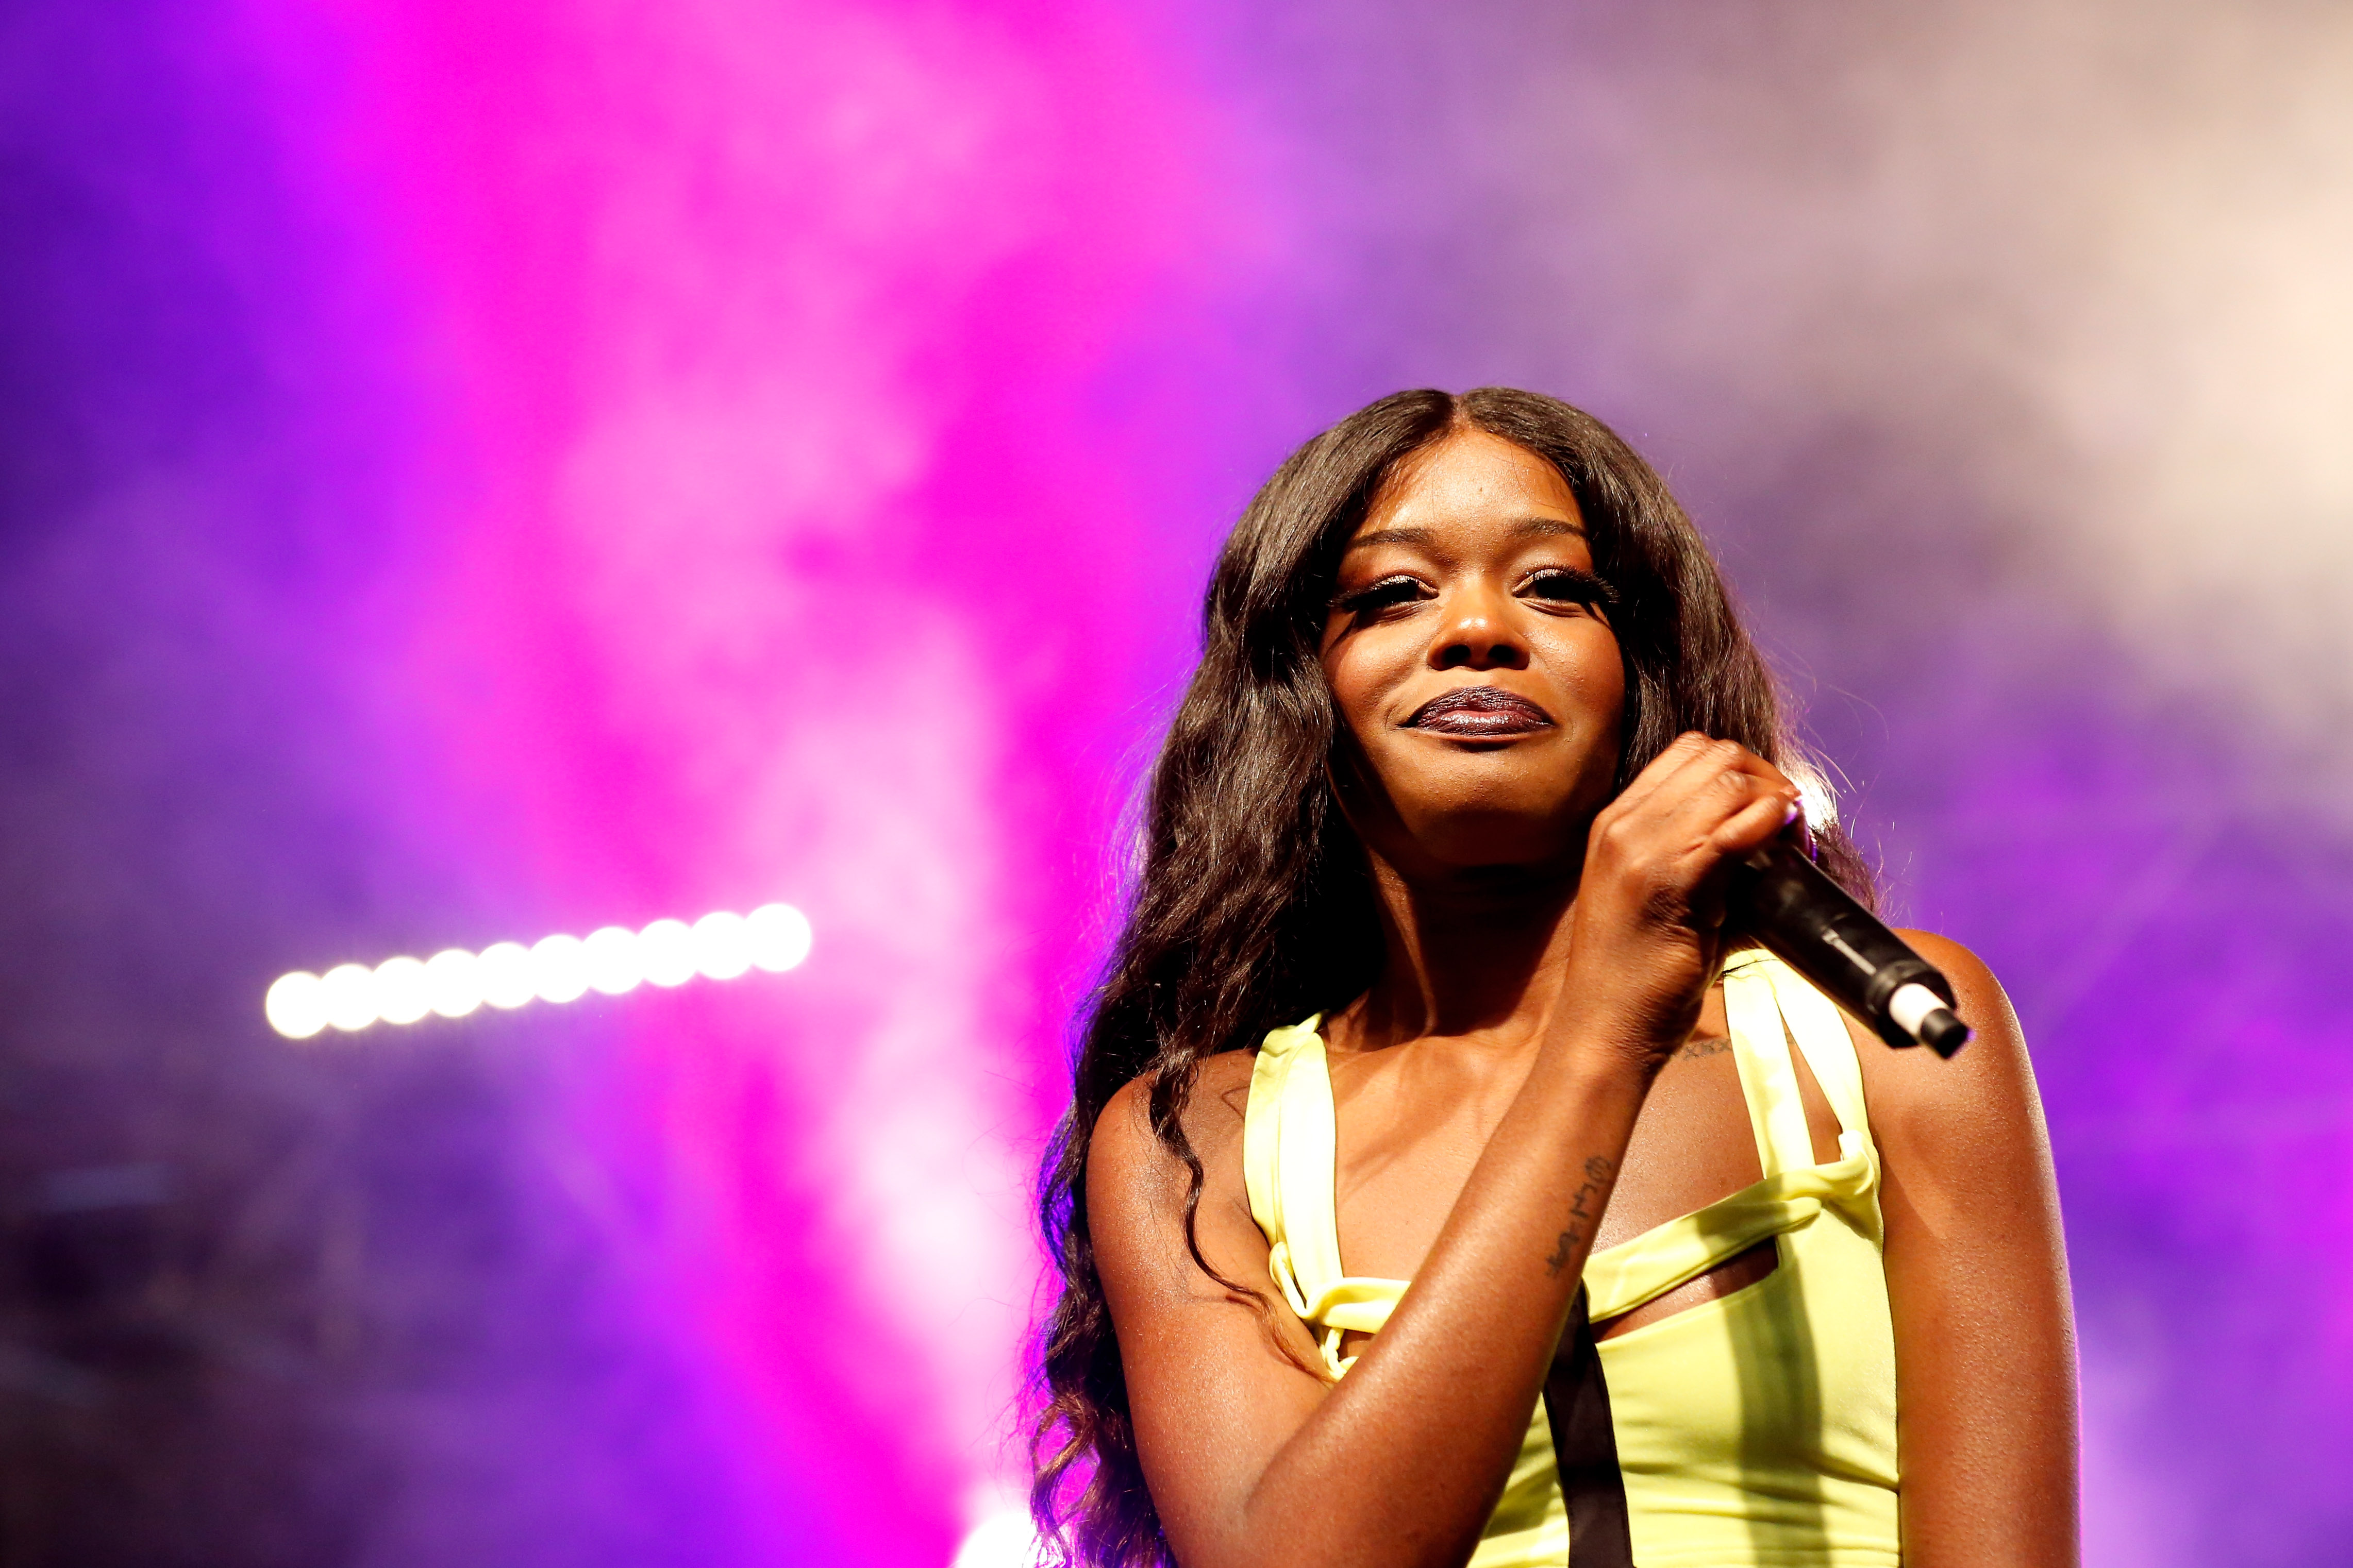 Azealia Banks Slams Beyoncé In Yet Another Twitter Rant GettyImages 150730546 1